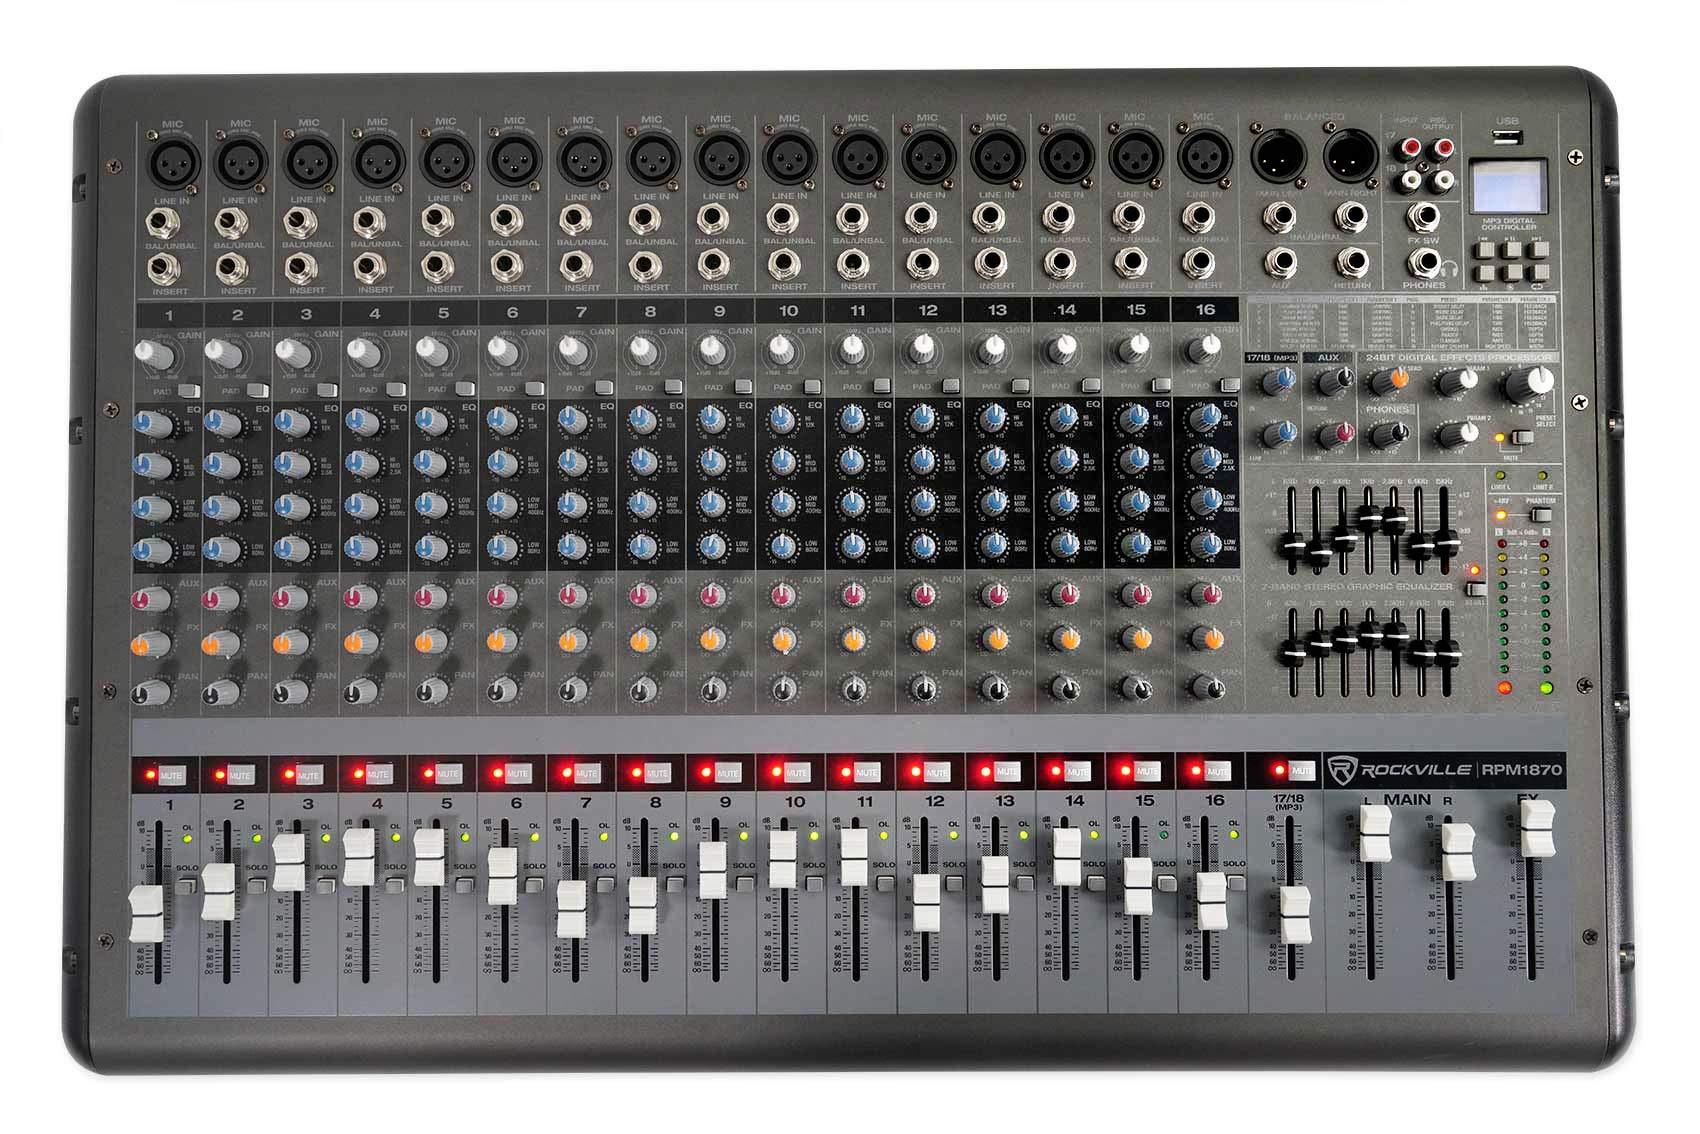 Rockville 18 Channel 6000w Powered Mixer w/USB, Effects/16 XDR2 Mic Pres (RPM1870)